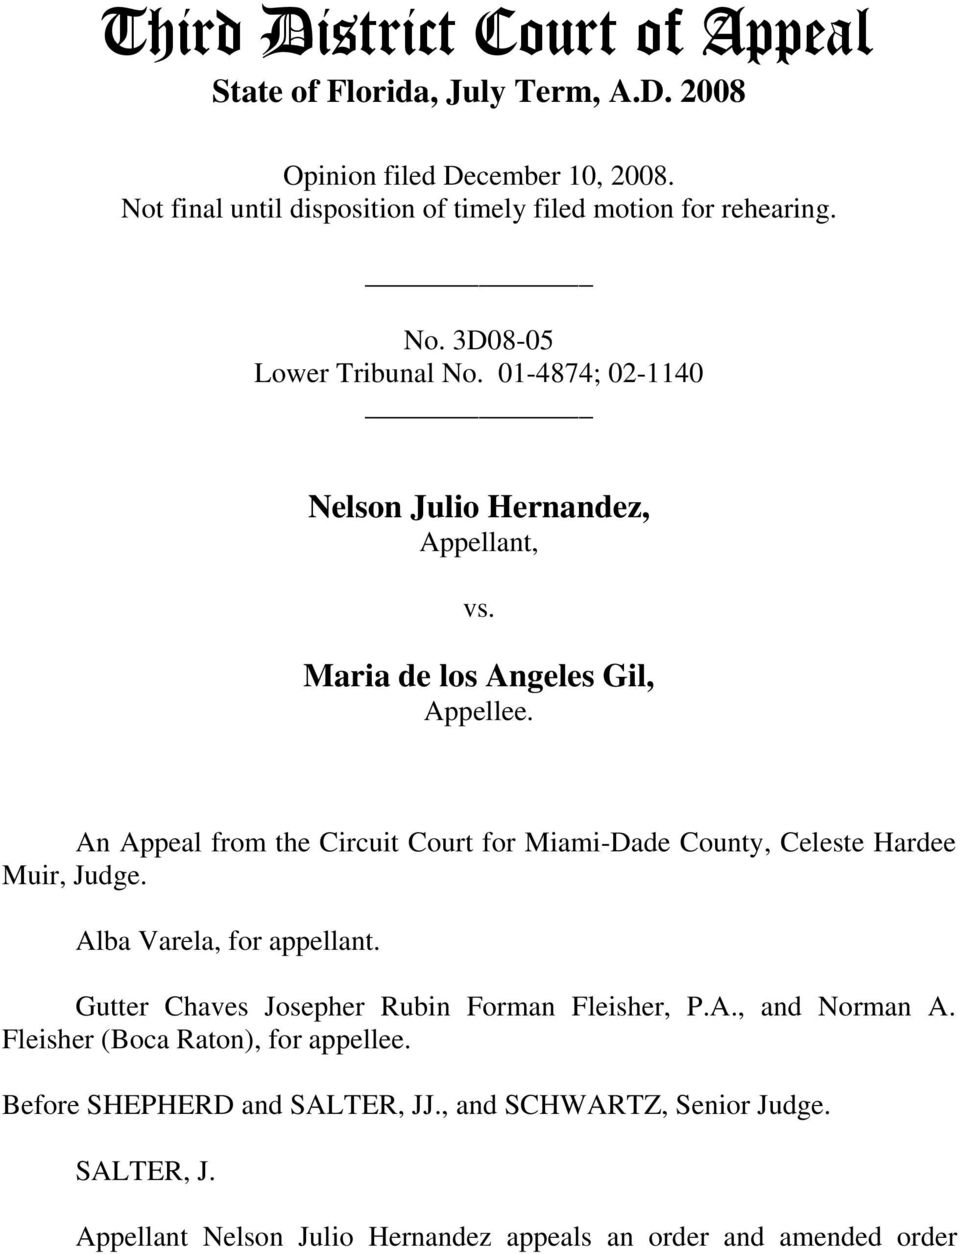 Maria de los Angeles Gil, Appellee. An Appeal from the Circuit Court for Miami-Dade County, Celeste Hardee Muir, Judge. Alba Varela, for appellant.